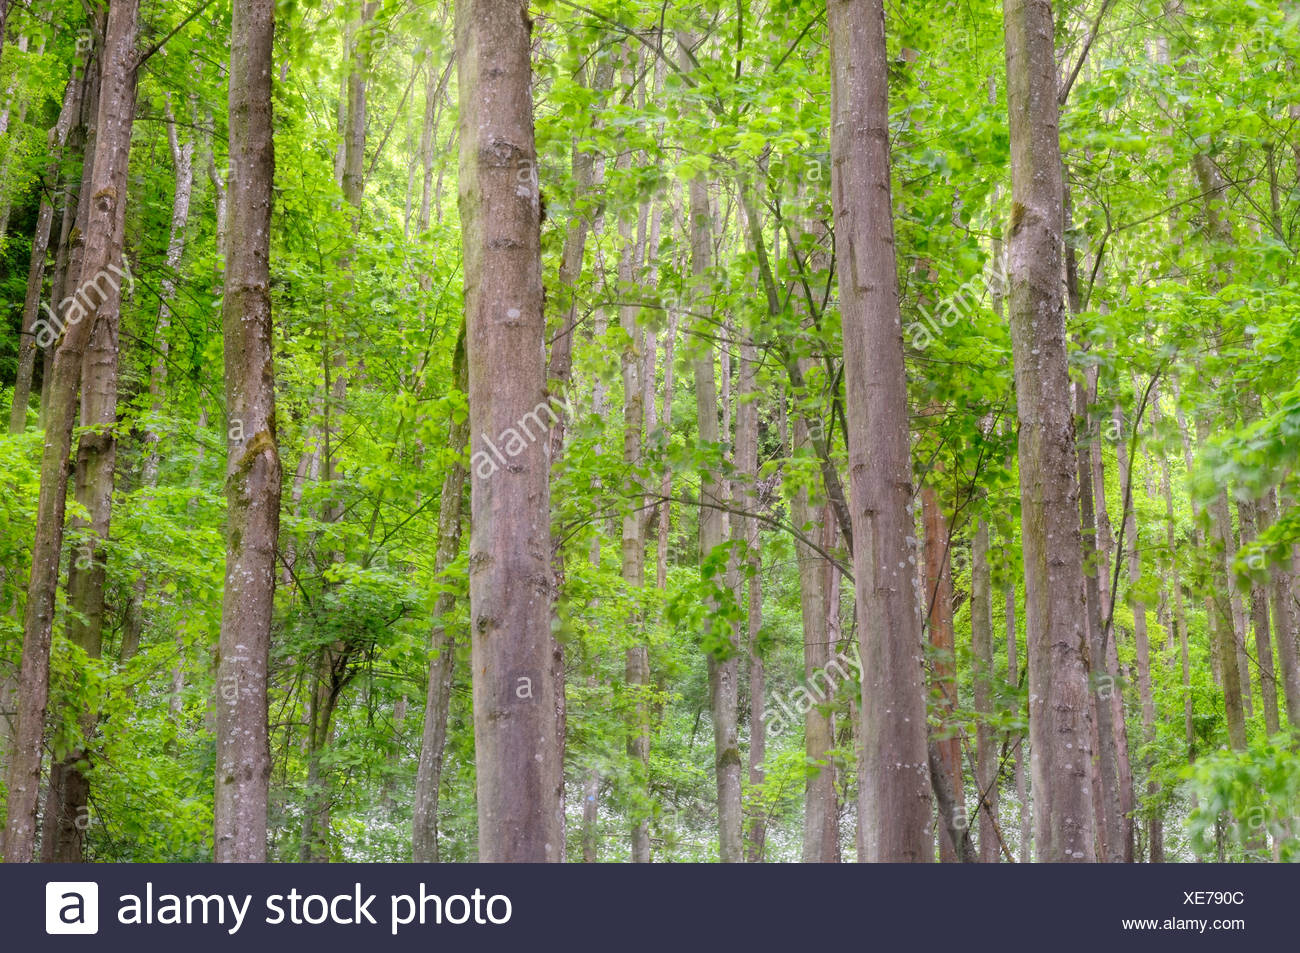 Beech forest (Fagus) with fresh leafage, Germany, Europe - Stock Image